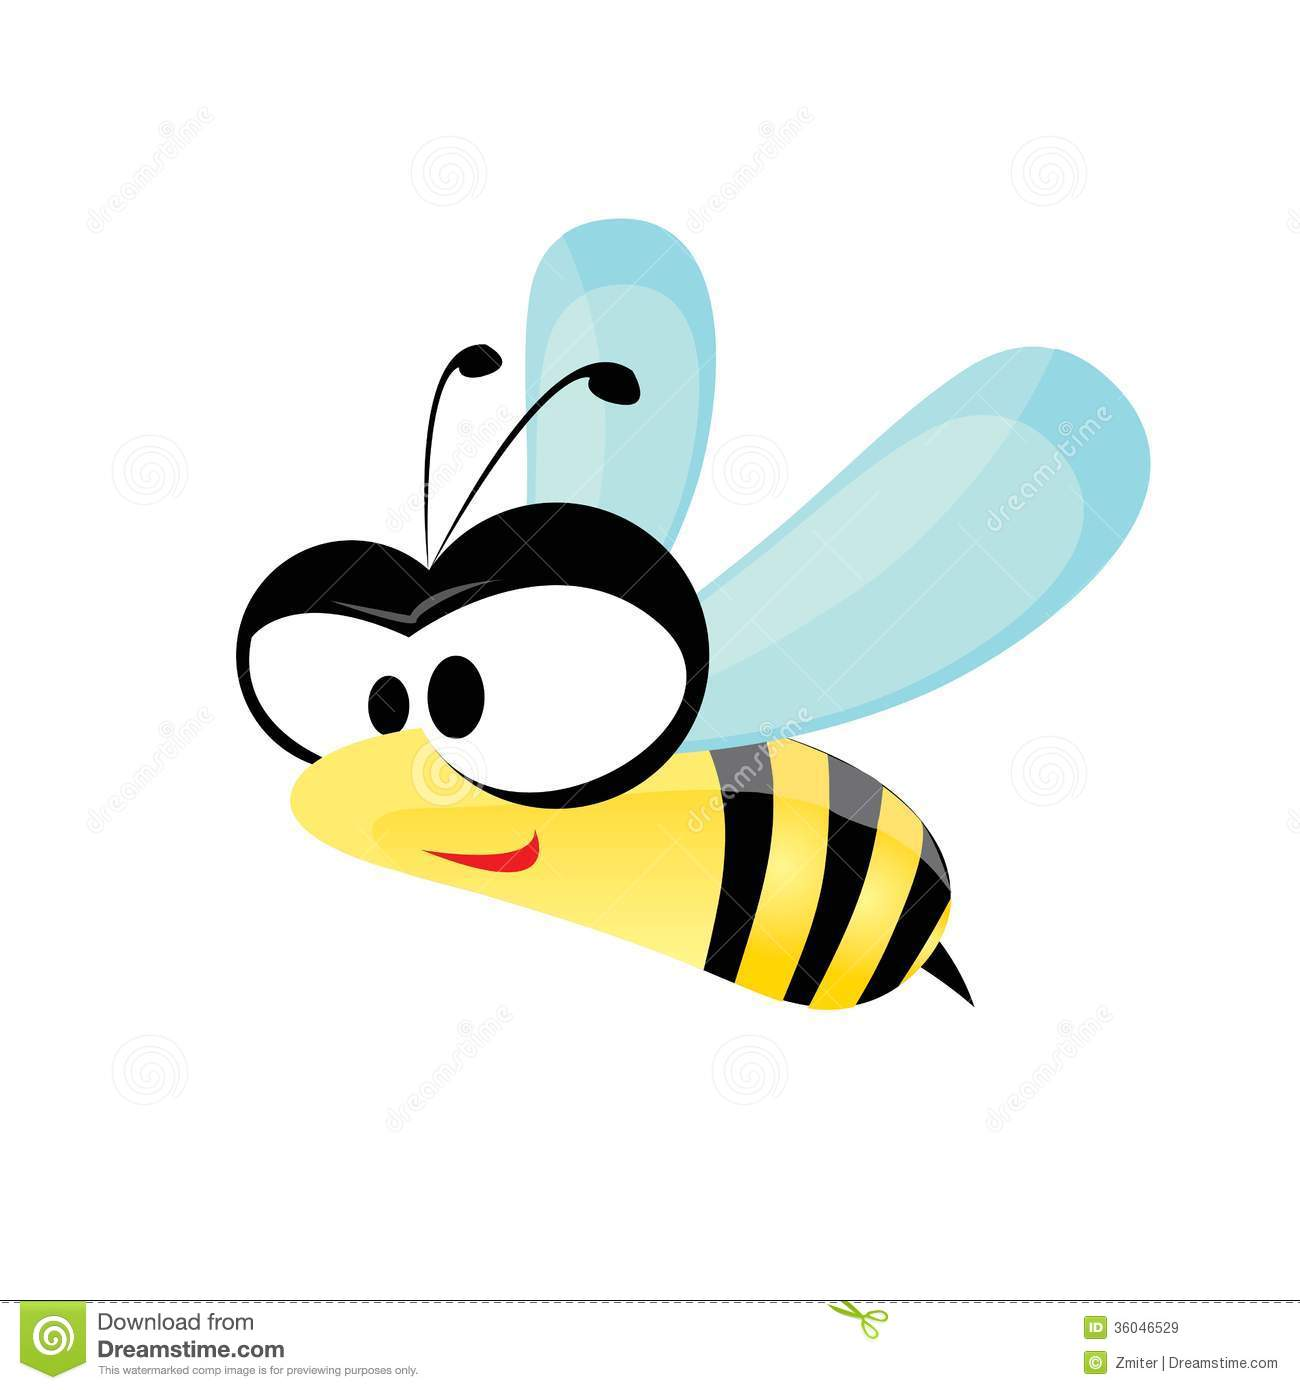 Cartoon Cute Bright Baby Bee Vector Illustration Royalty Free Stock Images Image 36046529